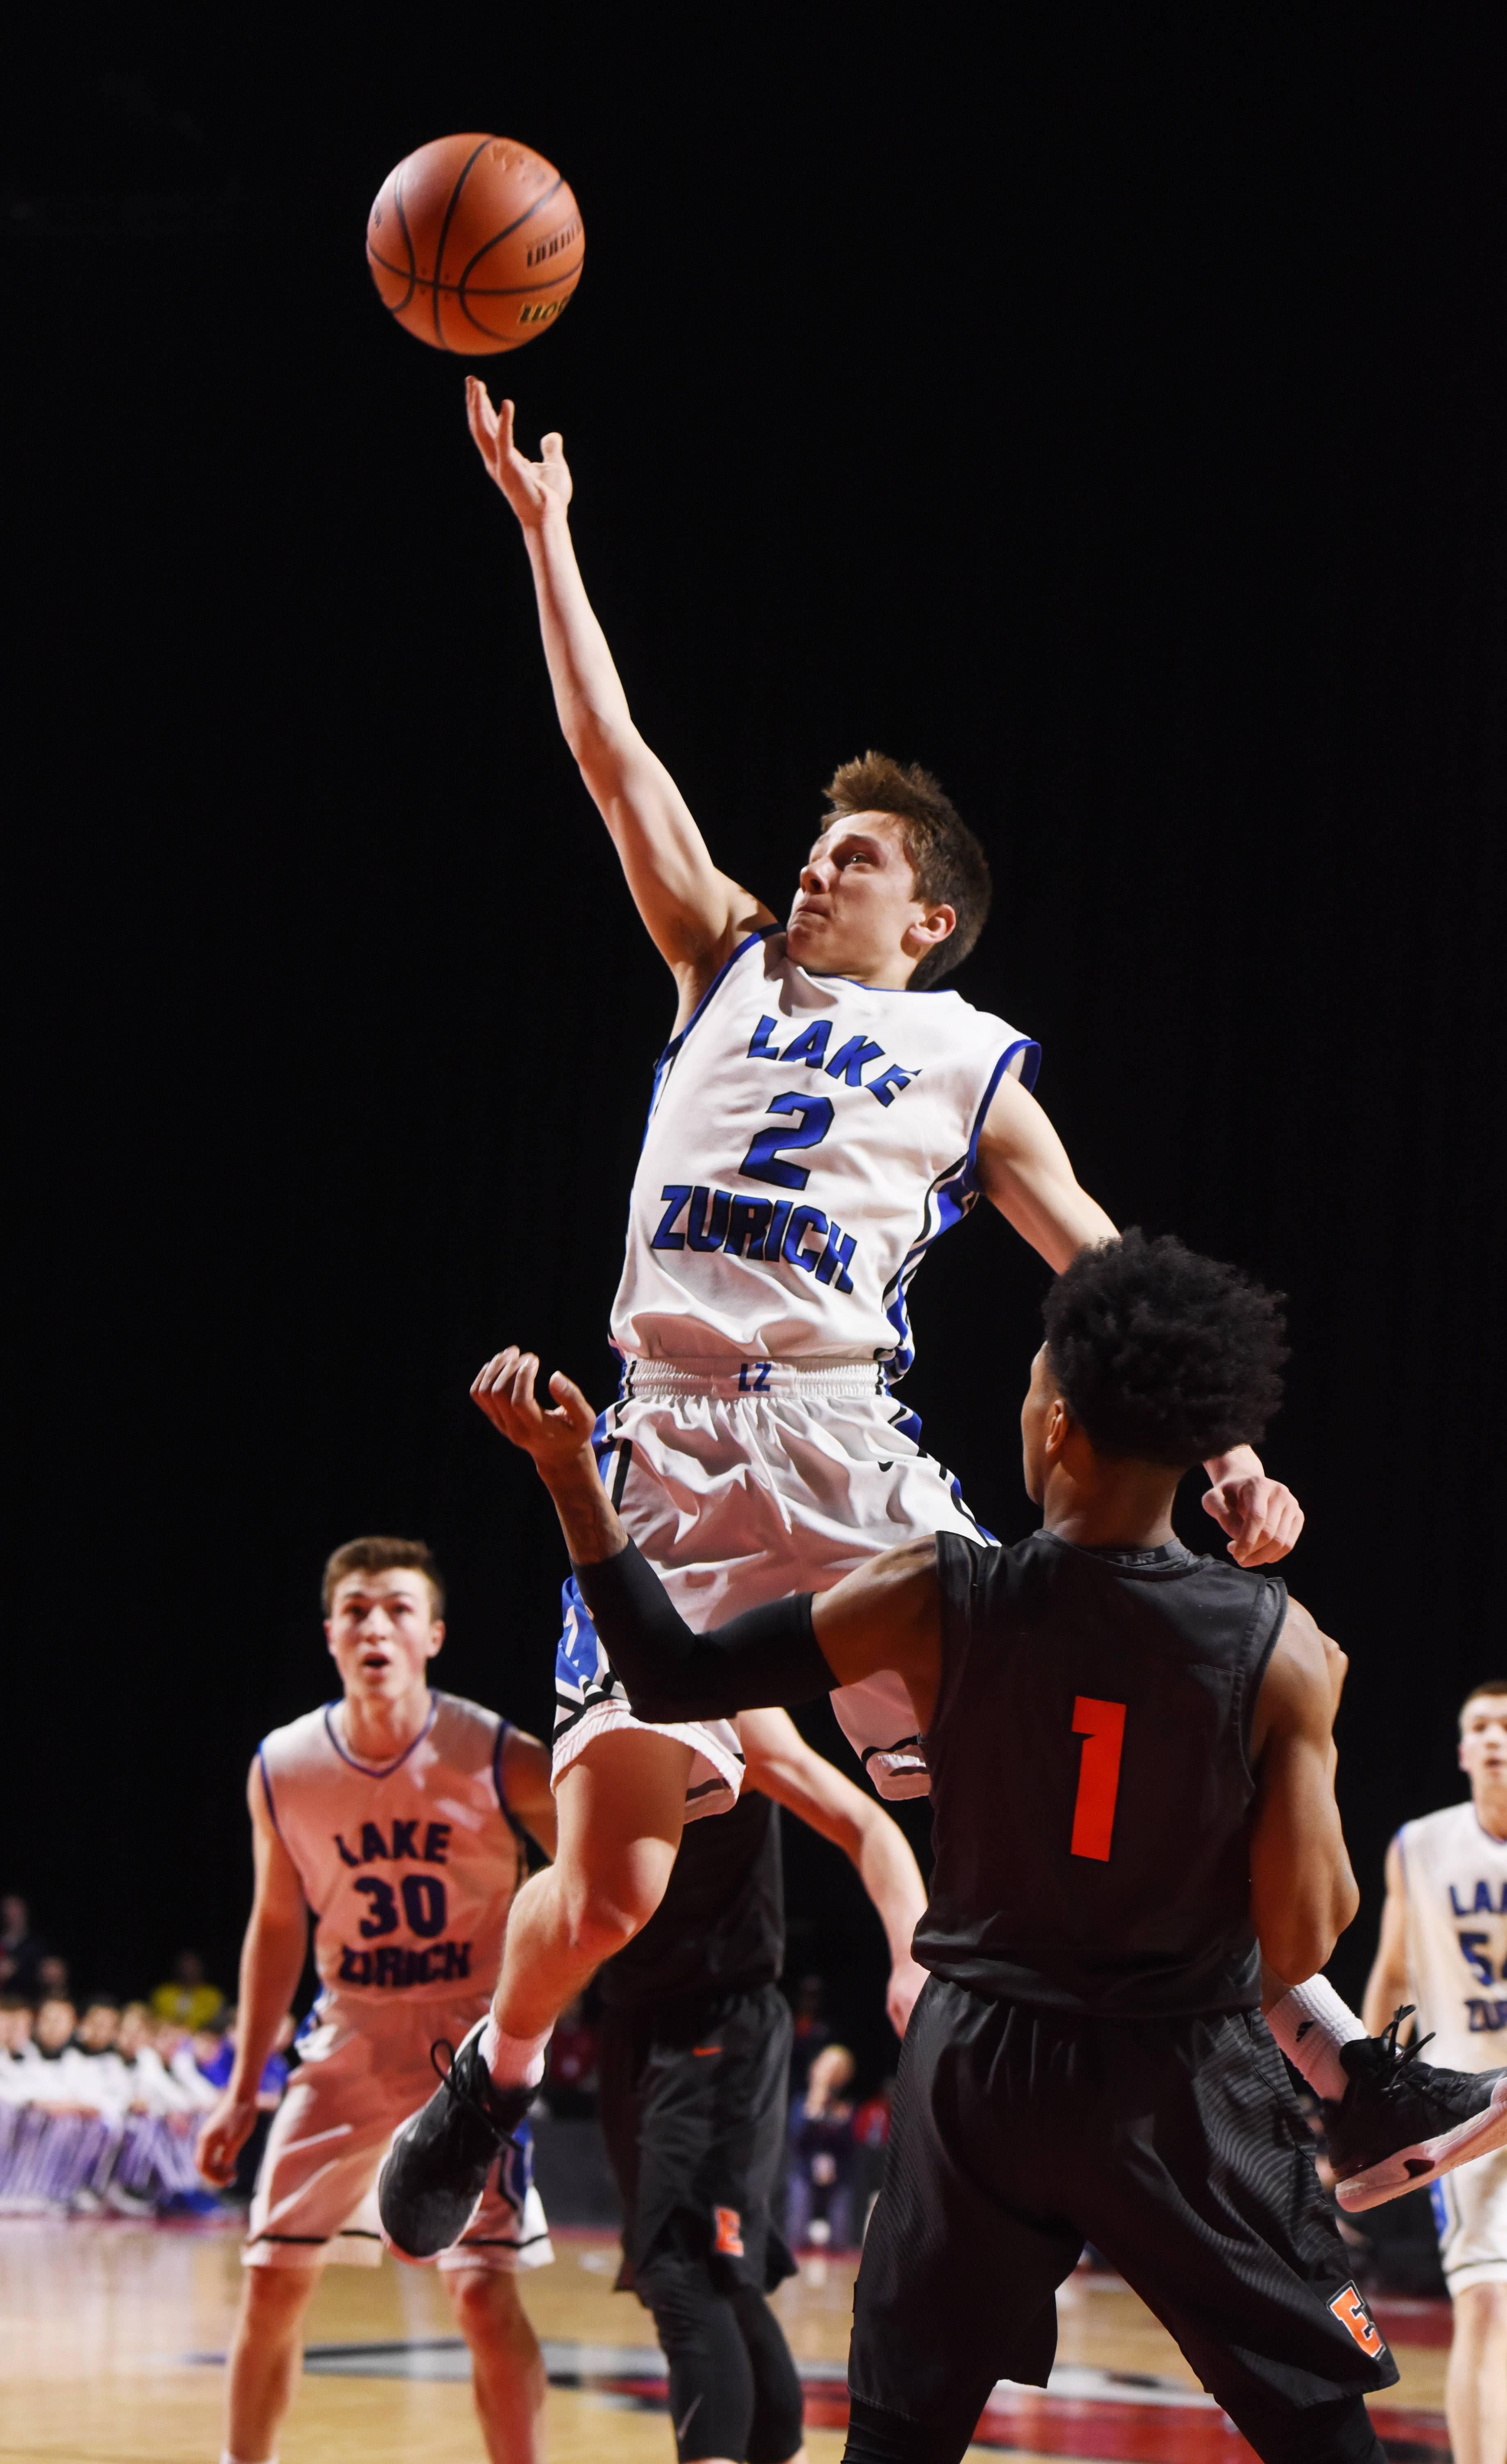 Lake Zurich's JR Cison drives to the basket for a layup against Evanston's Jaheim Holden during Class 4A supersectional play at the Sears Centre in Hoffman Estates on Tuesday.